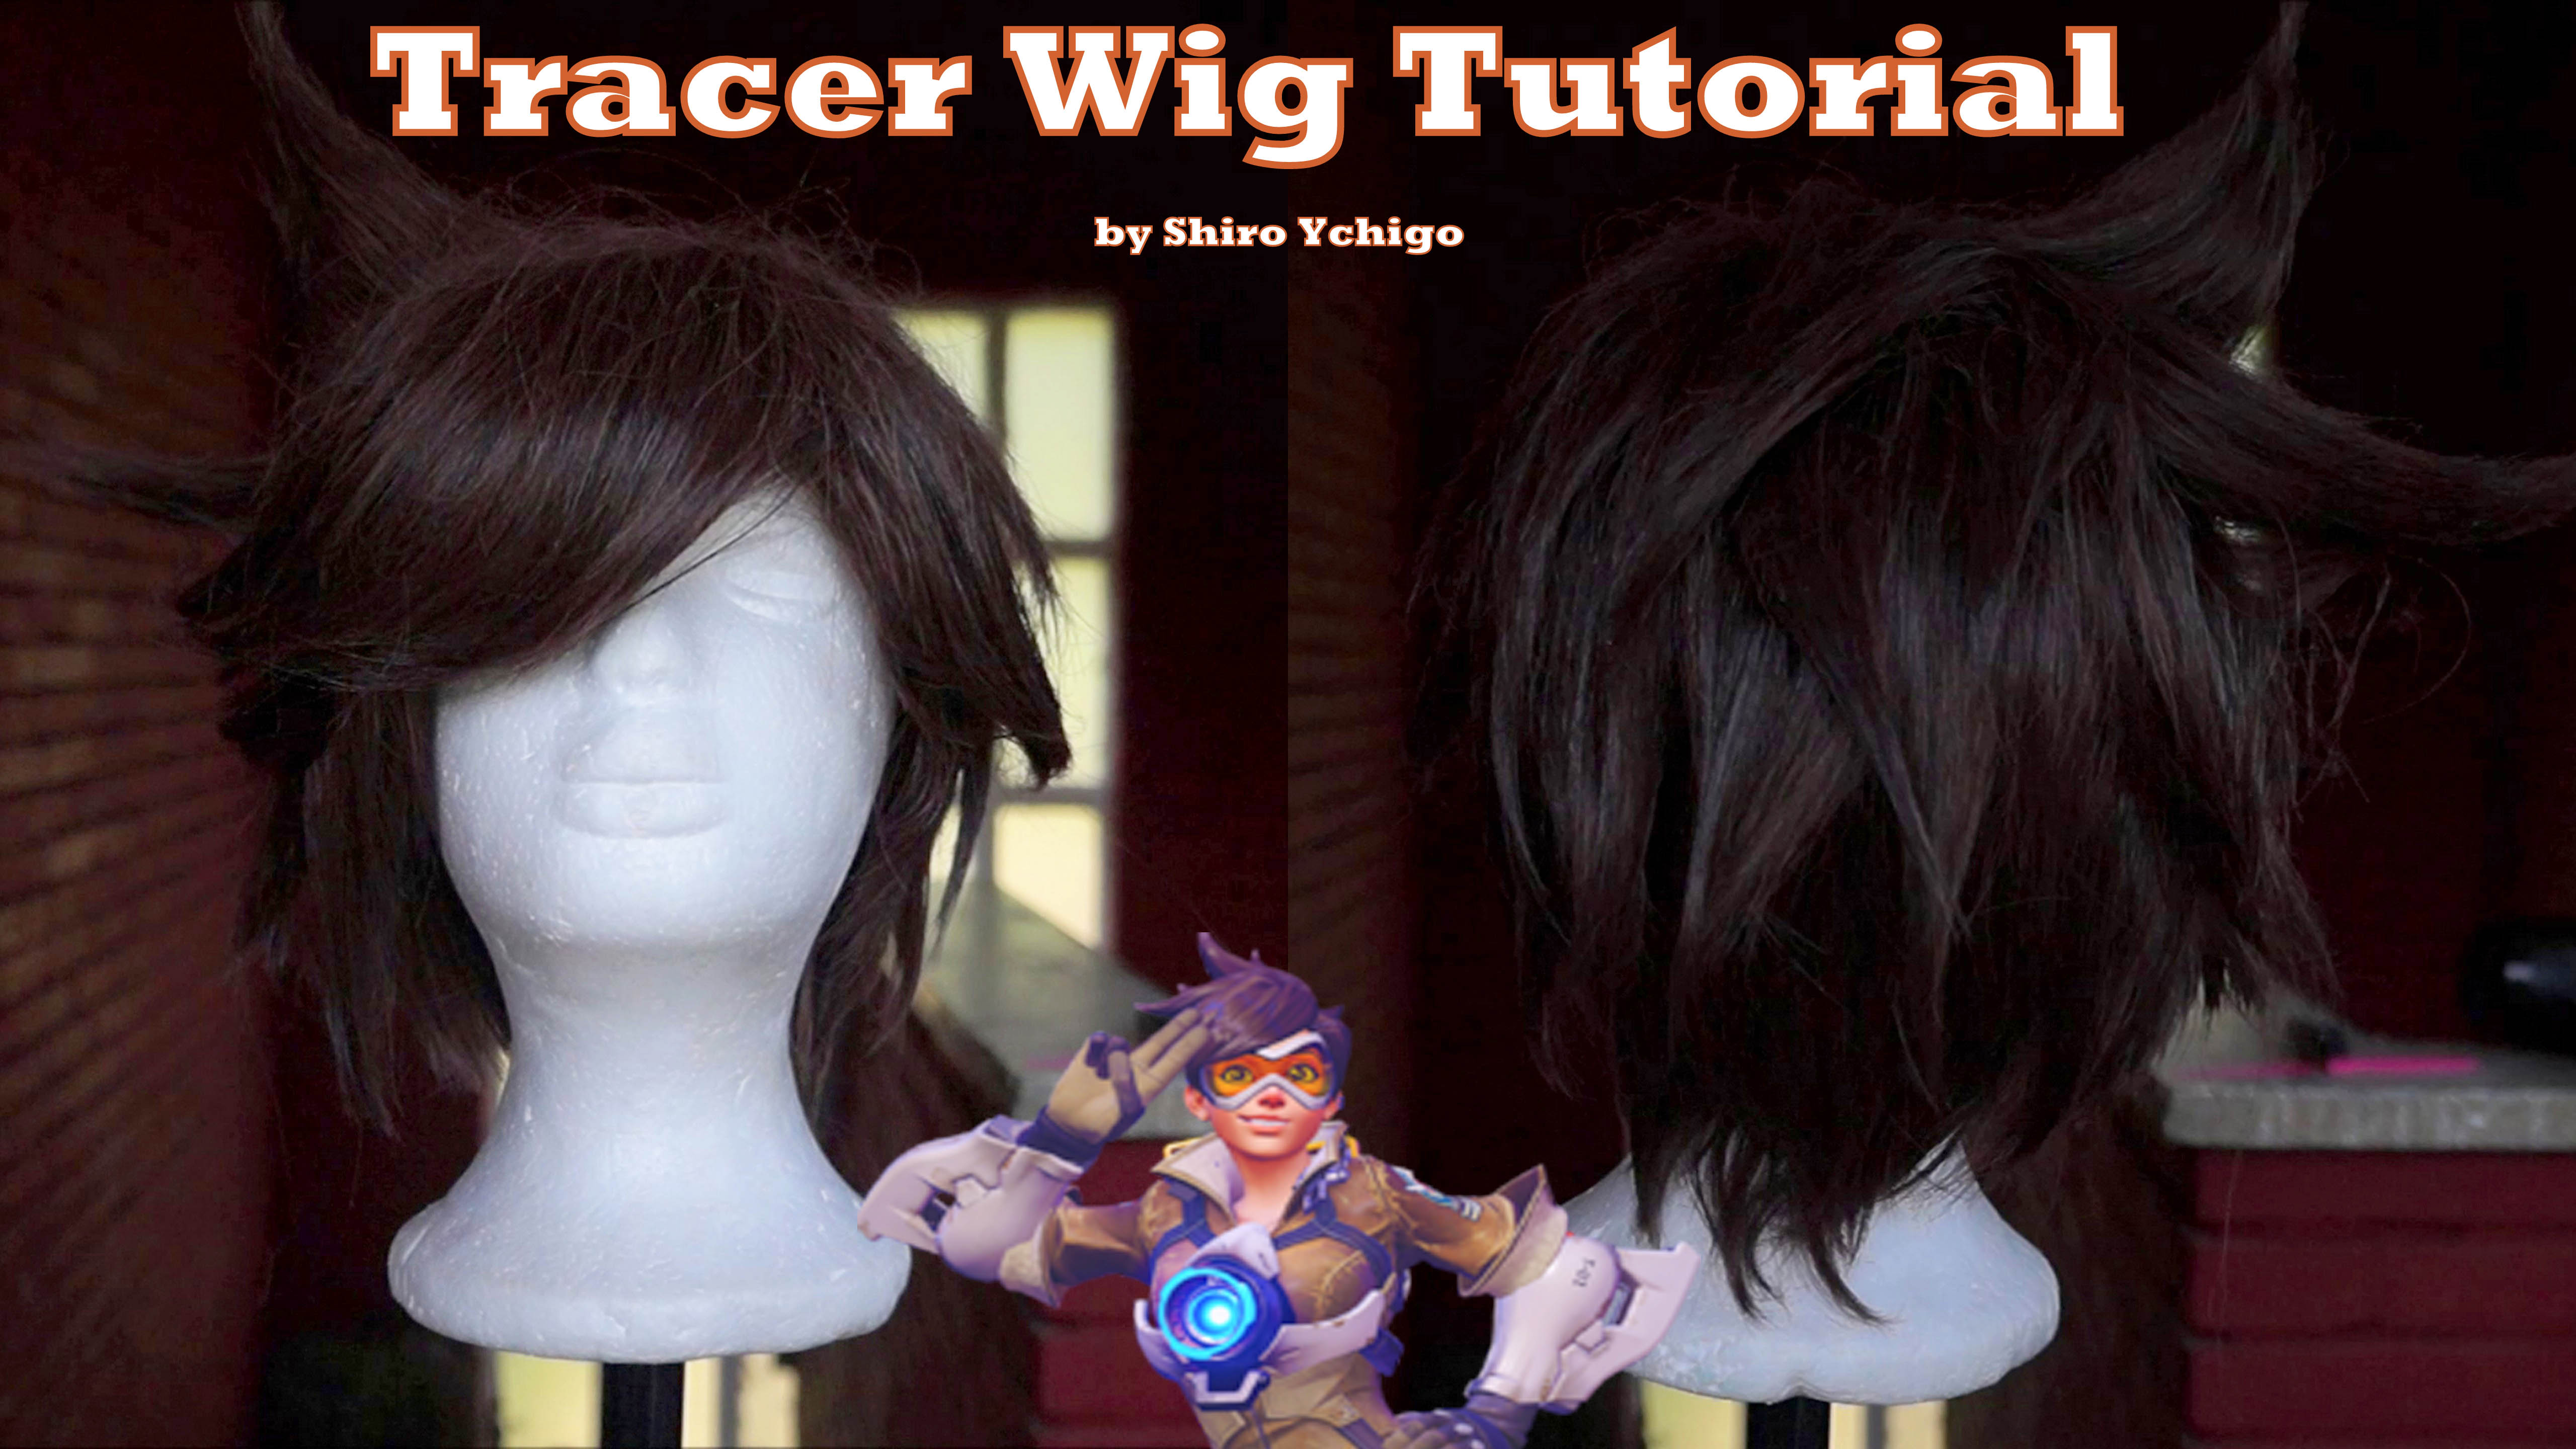 Tracer Wig Tutorial